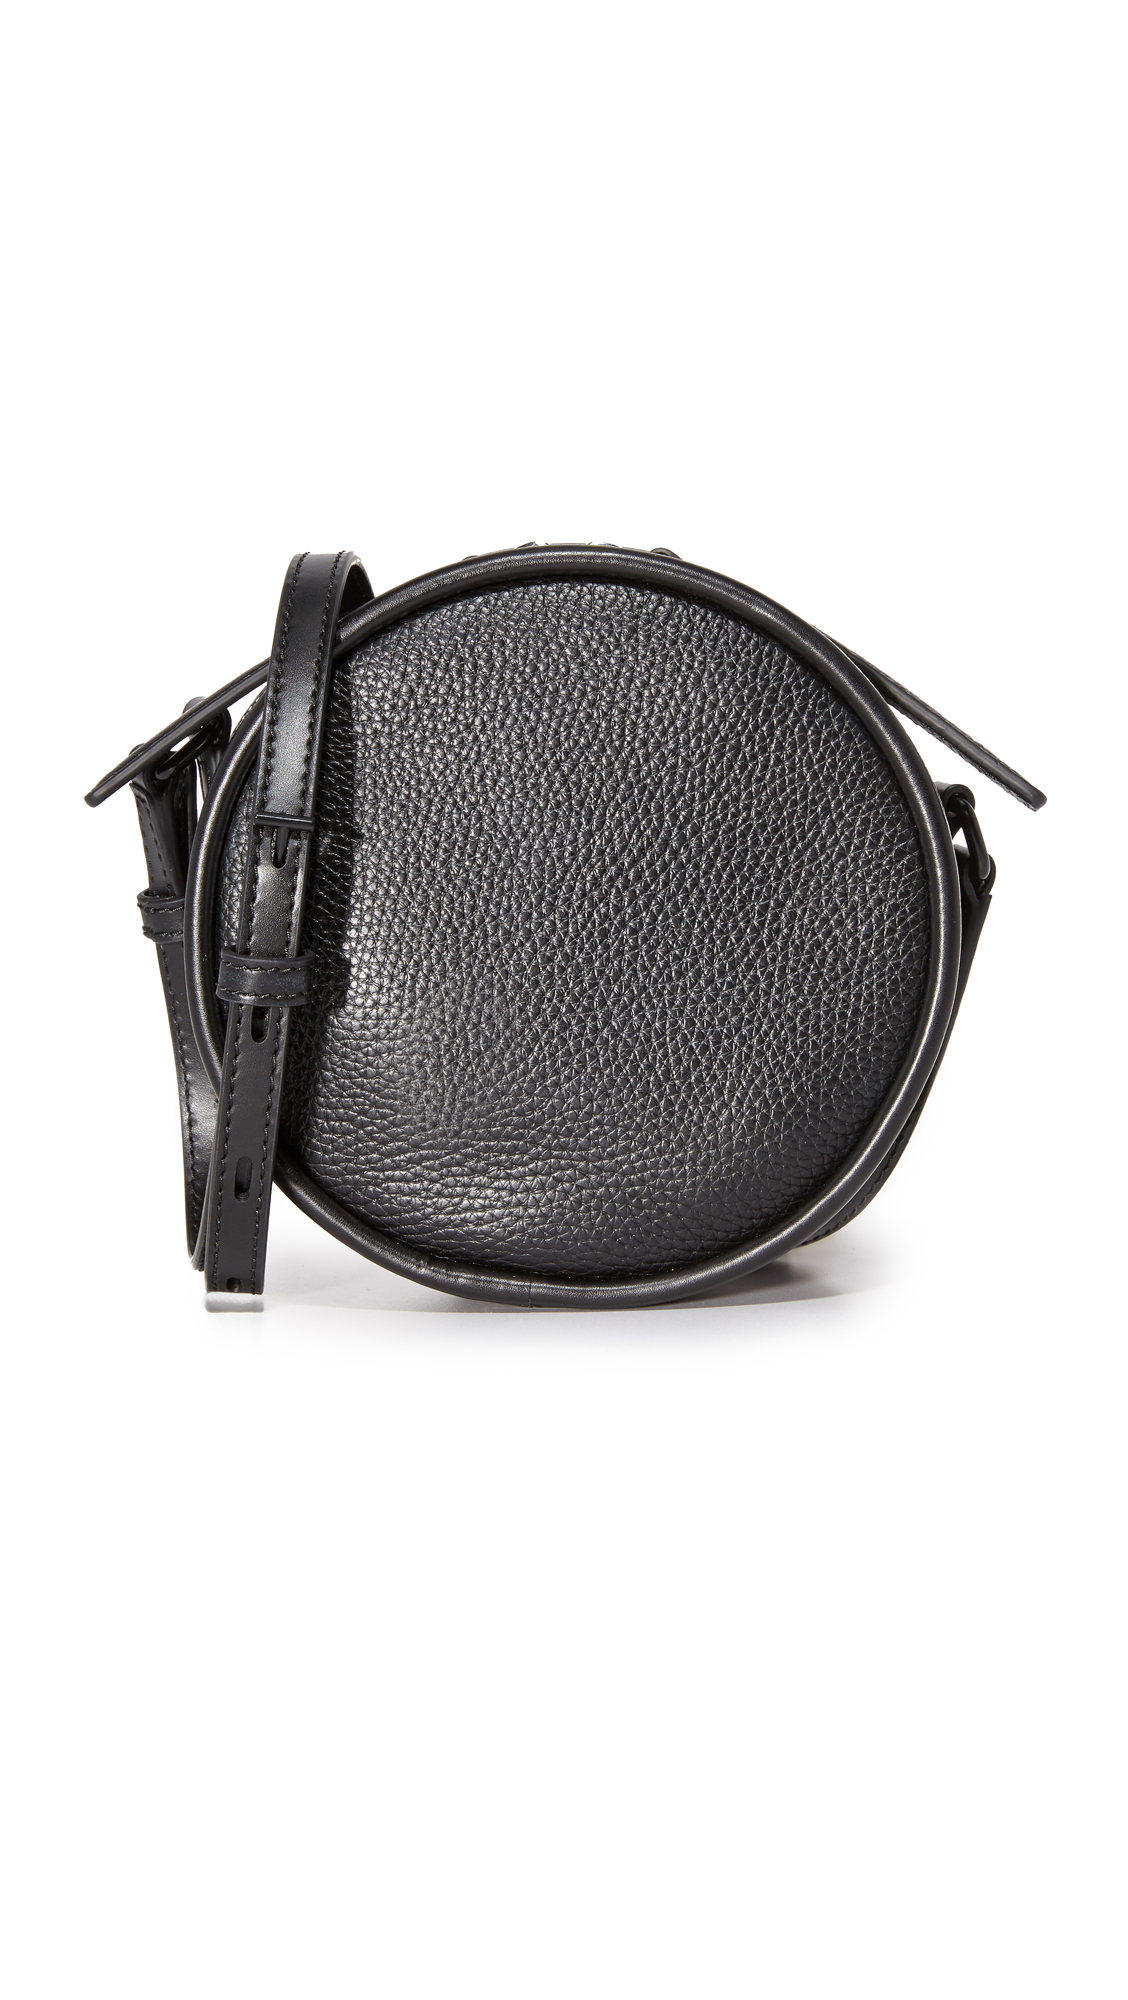 KARA CD Bag - Black